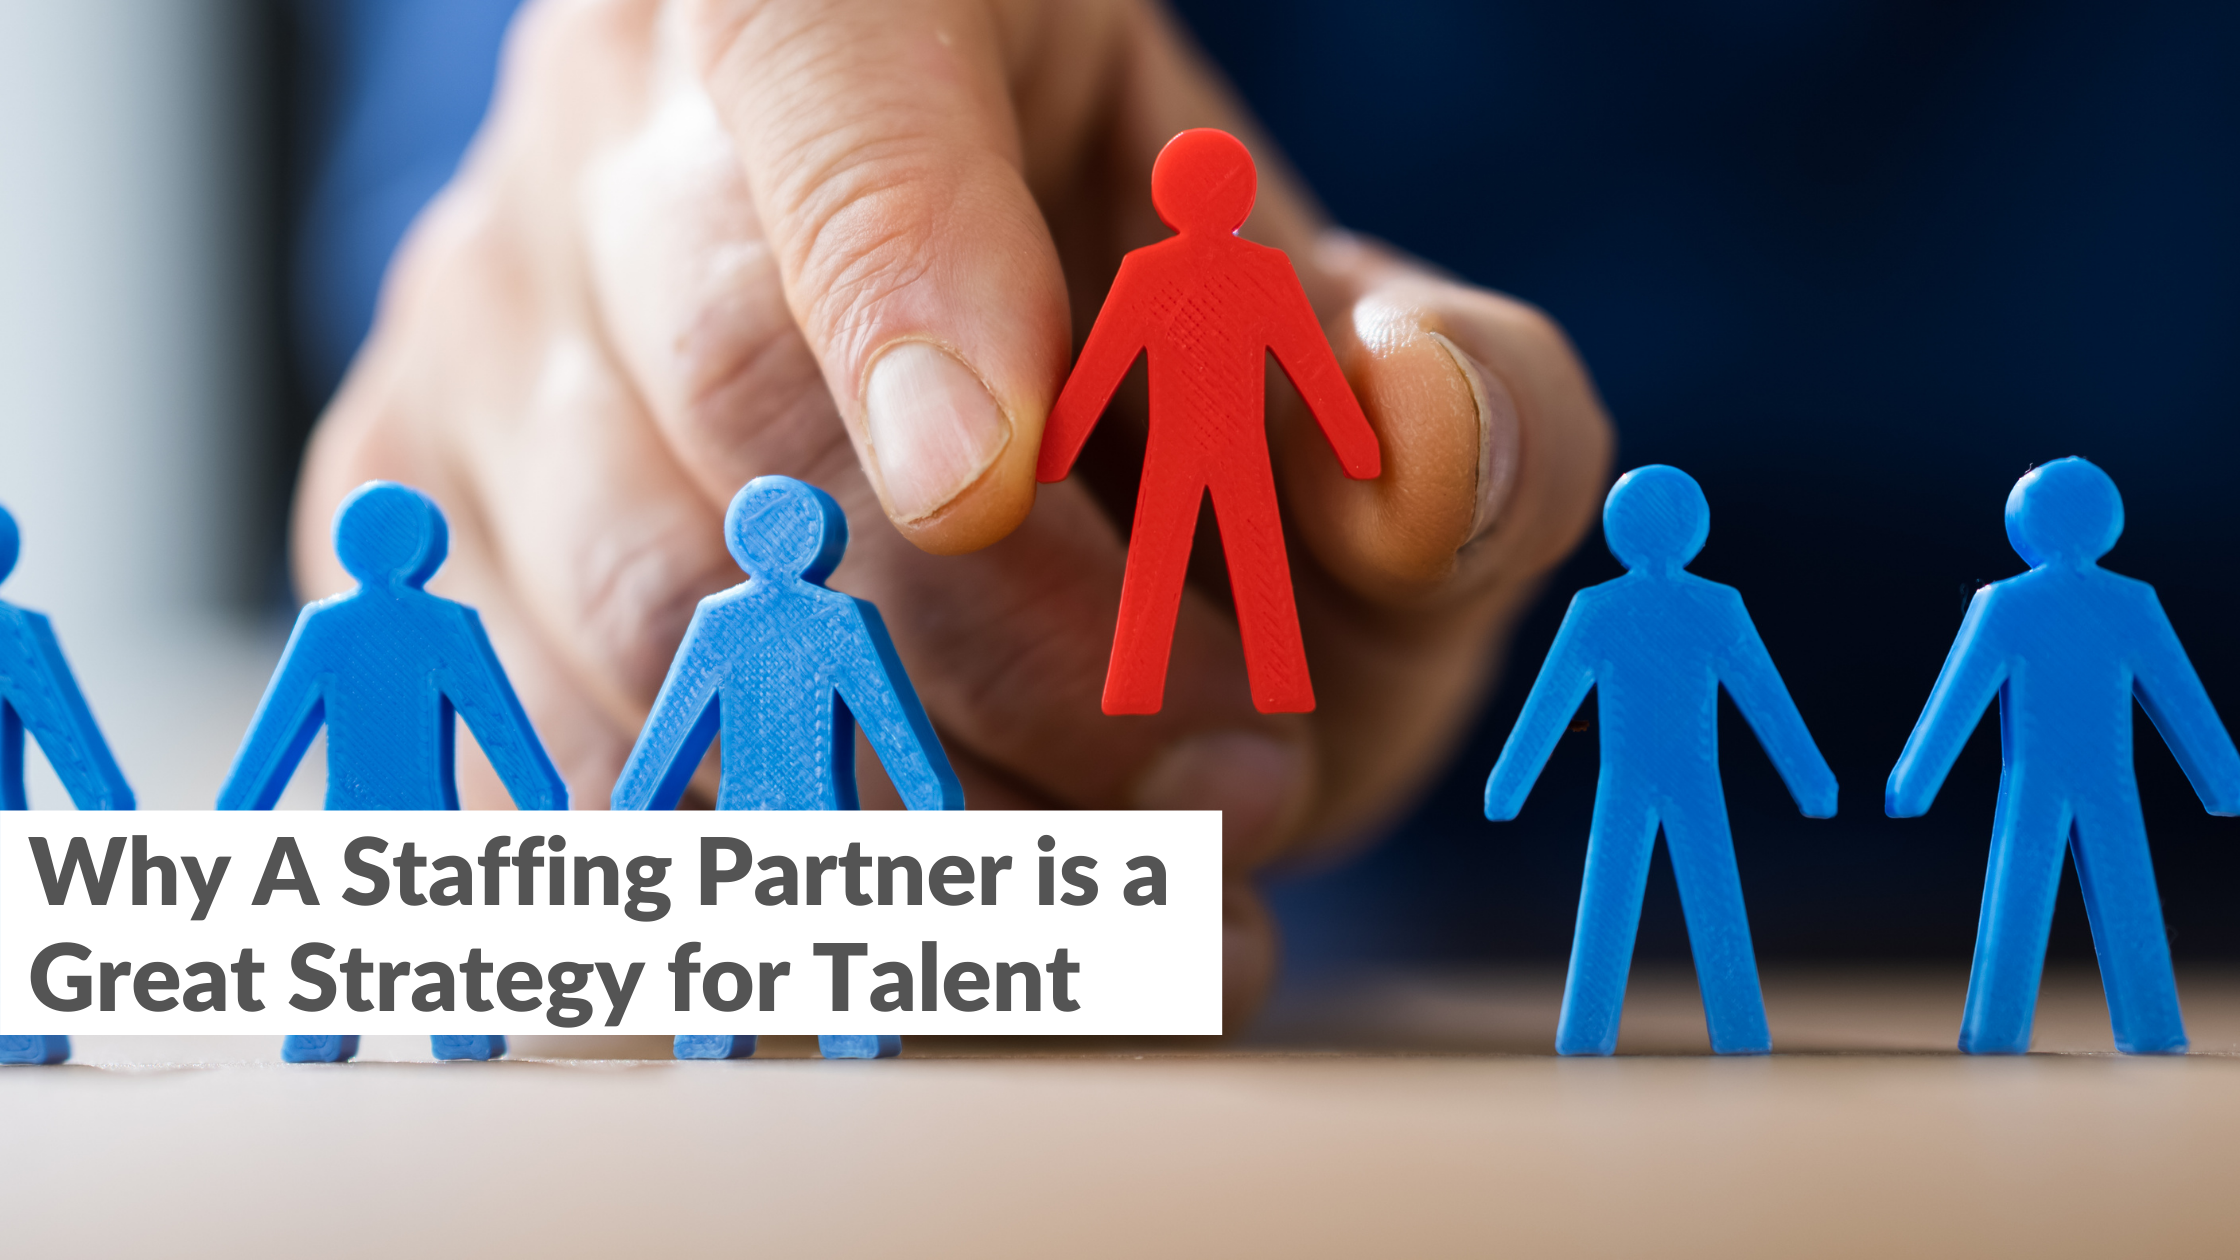 Why A Staffing Partner is a Great Strategy for Talent